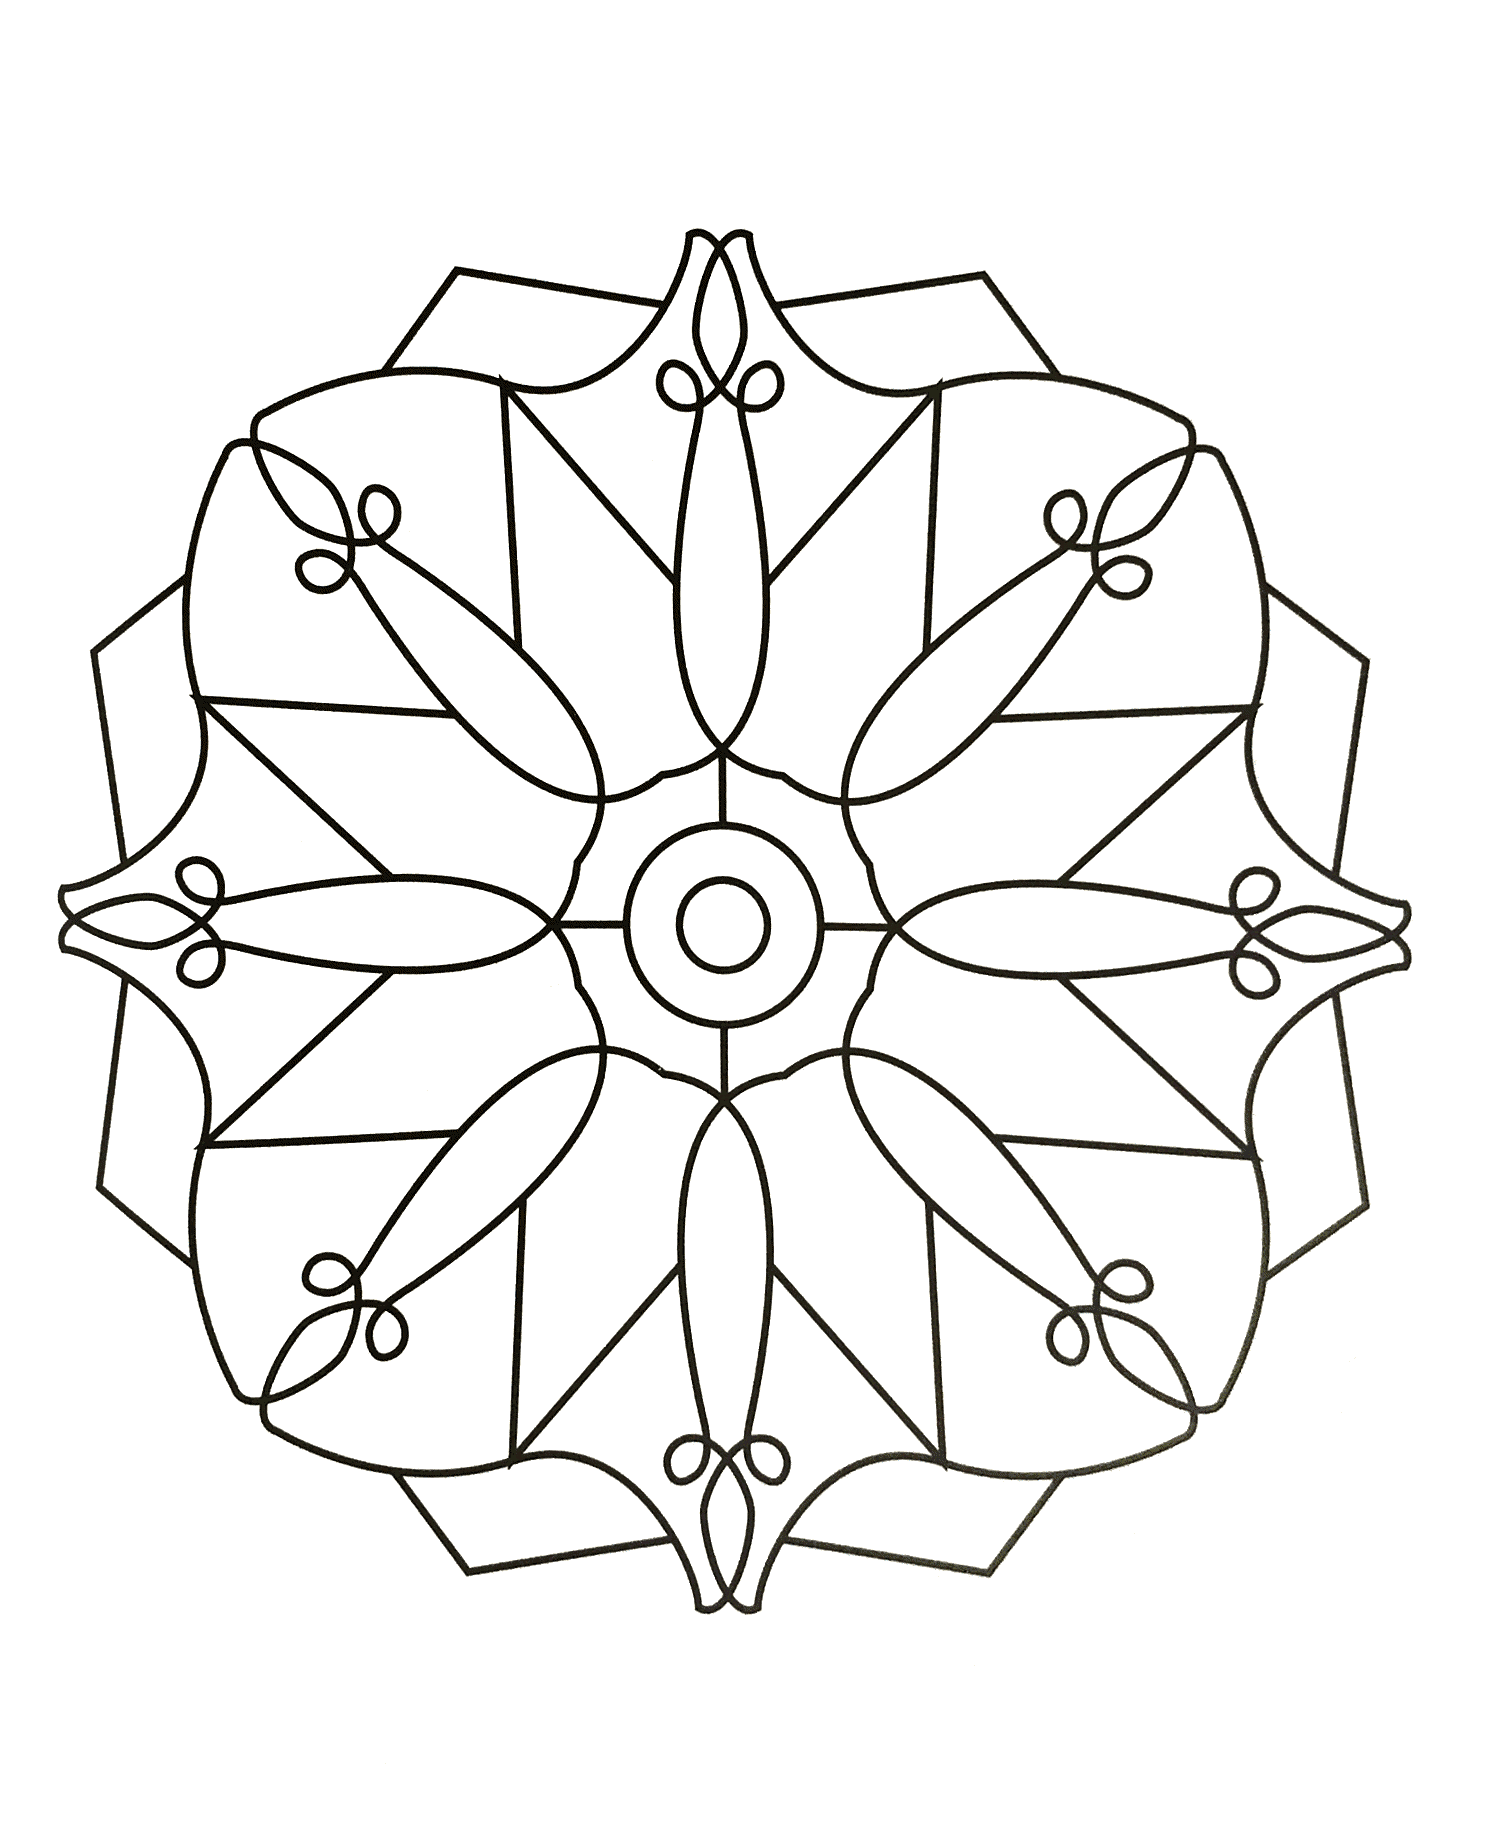 simple mandala 85 m alas coloring pages for kids to print color